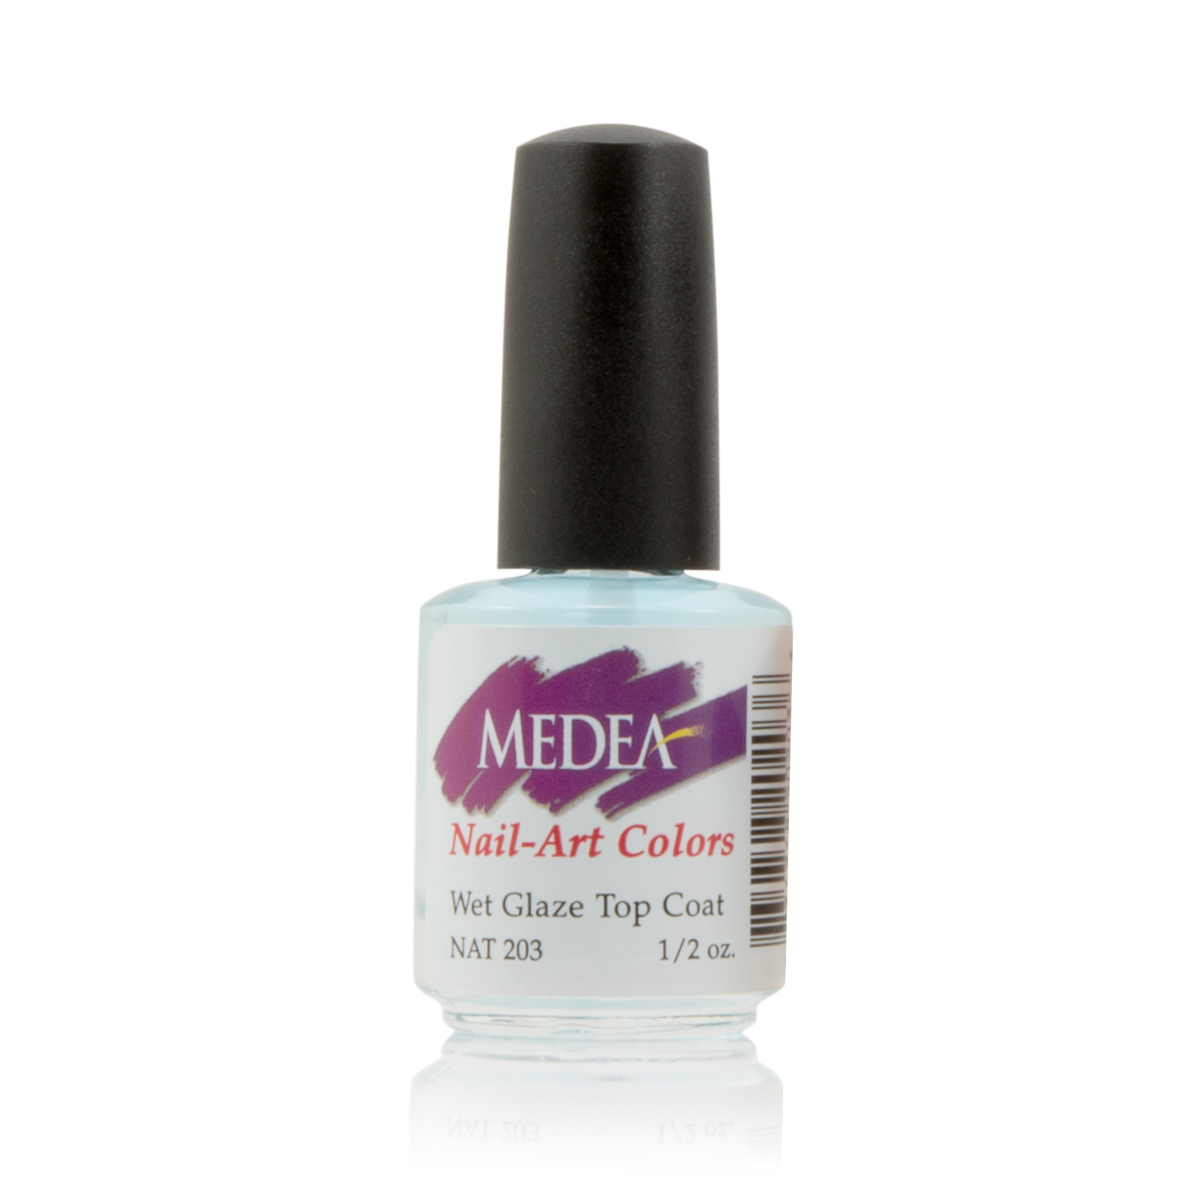 Medea Nail Wet Glaze Top Coat 1/2 Oz